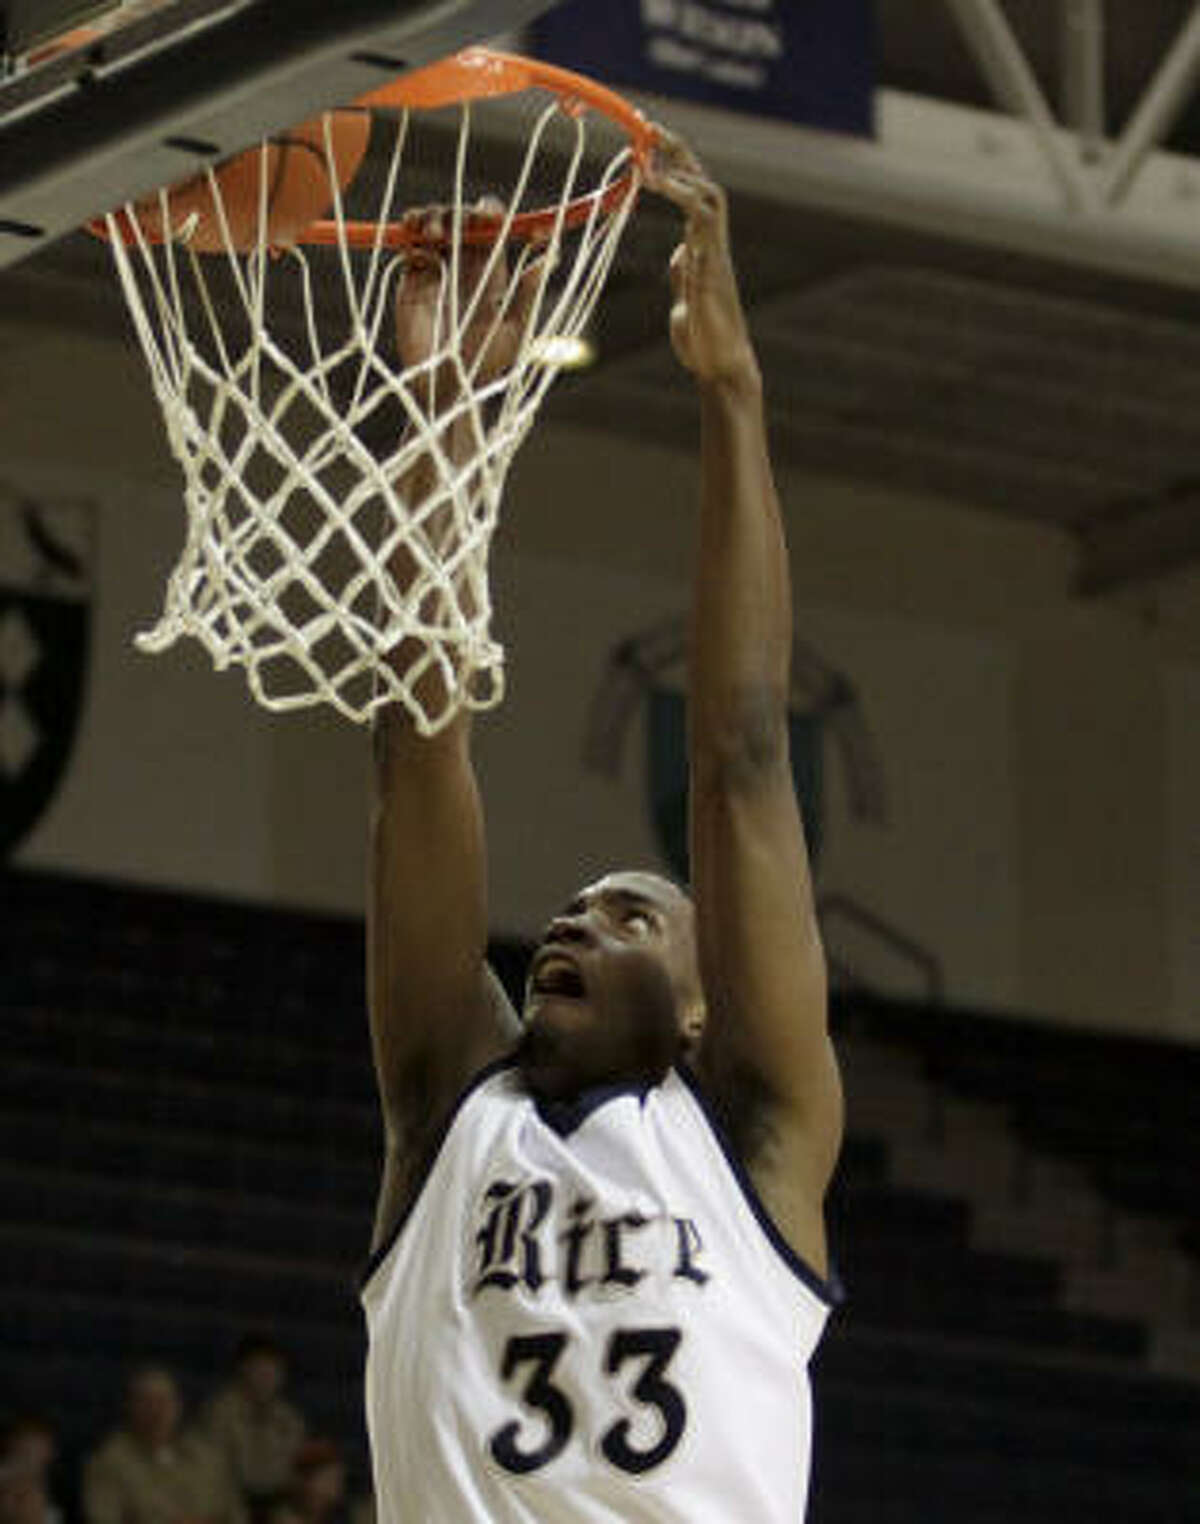 Rice guard Lawrence Ghoram finished with 13 points.